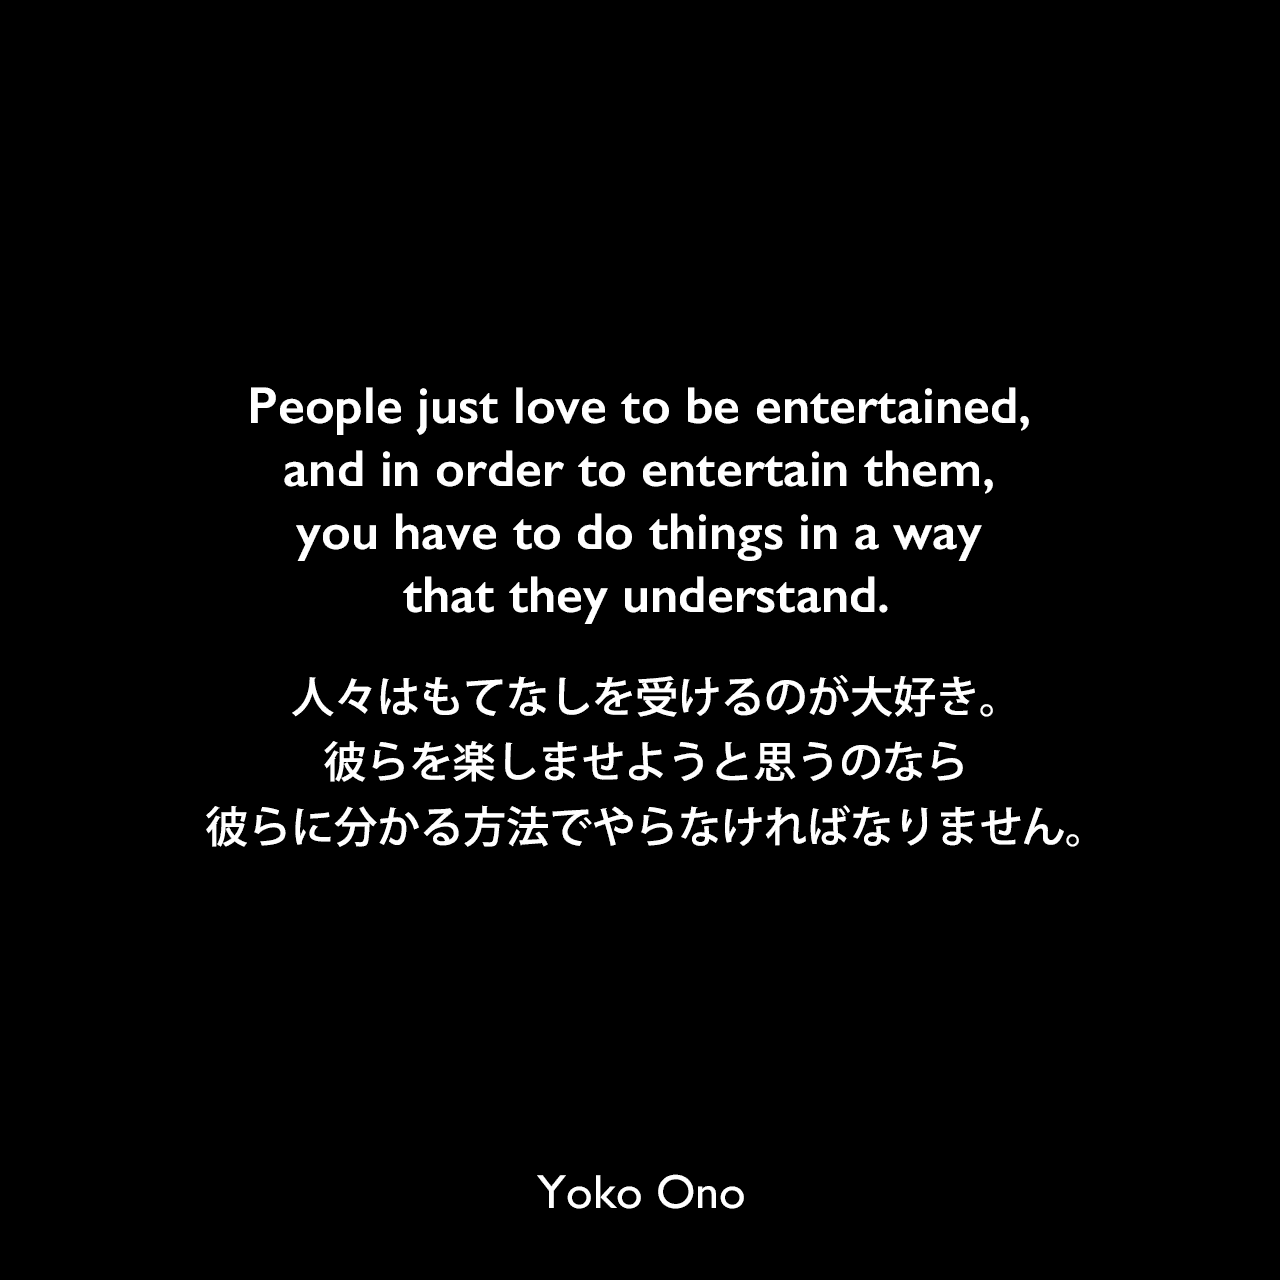 People just love to be entertained, and in order to entertain them, you have to do things in a way that they understand.人々はもてなしを受けるのが大好き。彼らを楽しませようと思うのなら、彼らに分かる方法でやらなければなりません。Yoko Ono